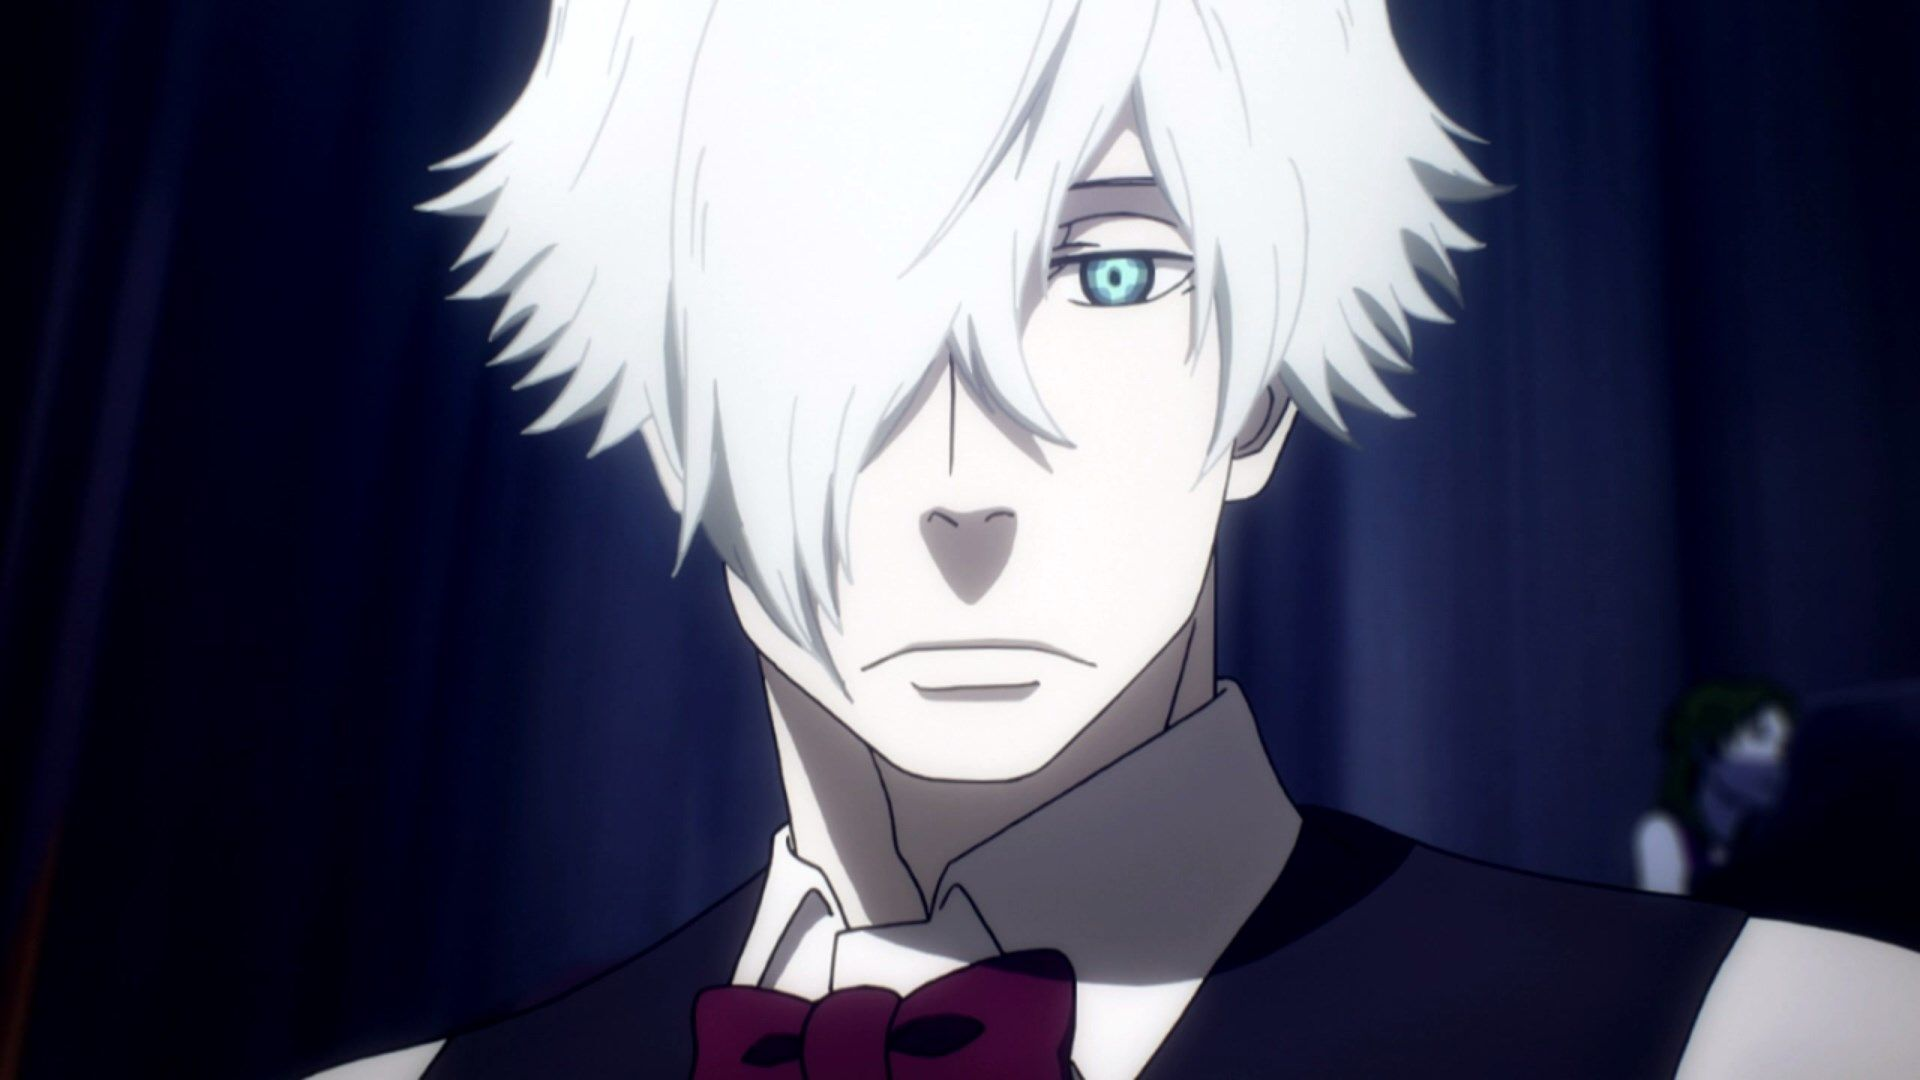 Anime Characters 150cm : Decim death parade best anime characters